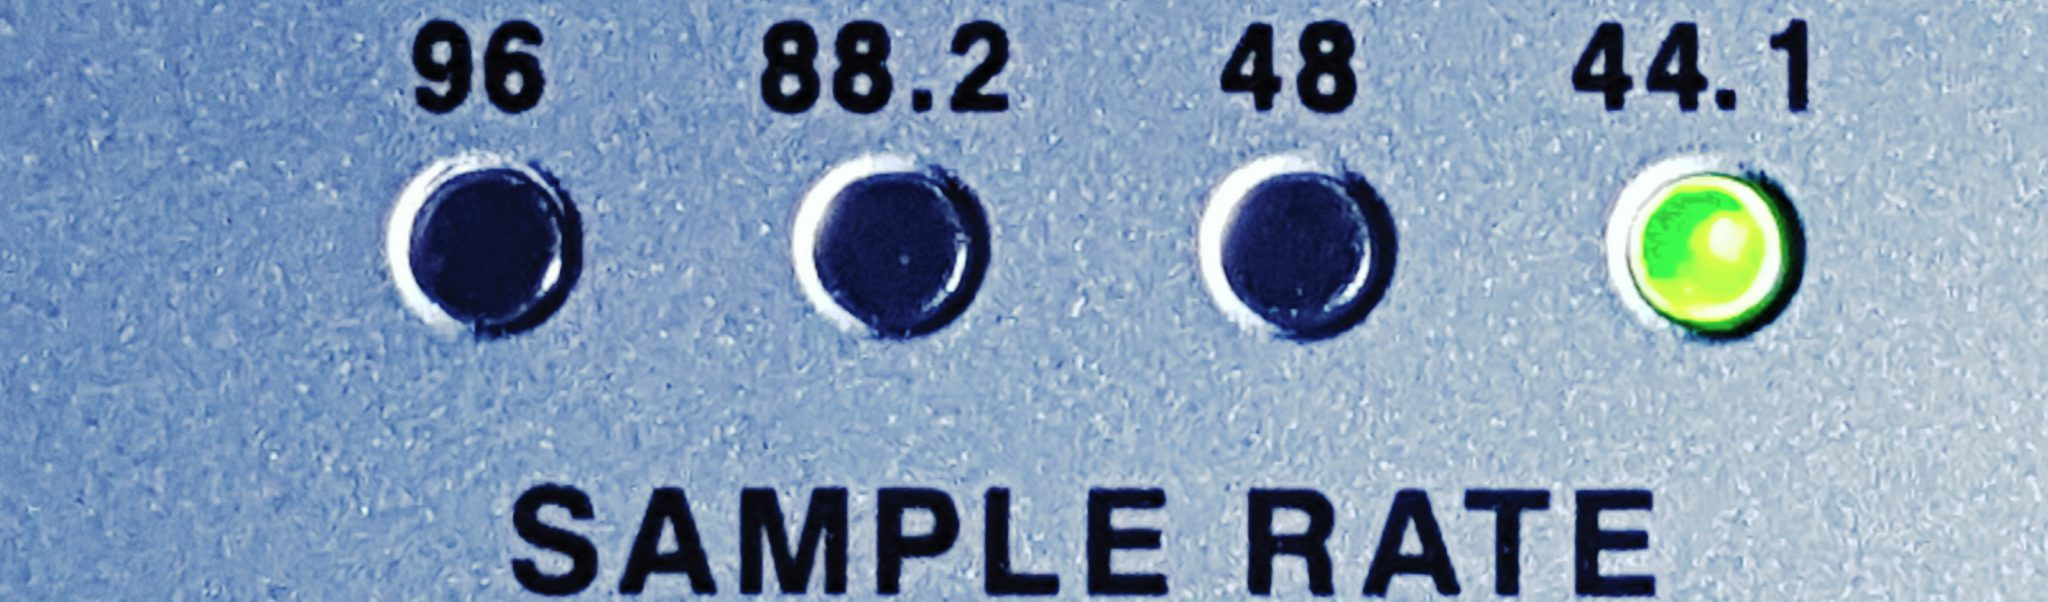 convert-cassette-to-cd-sample-rates